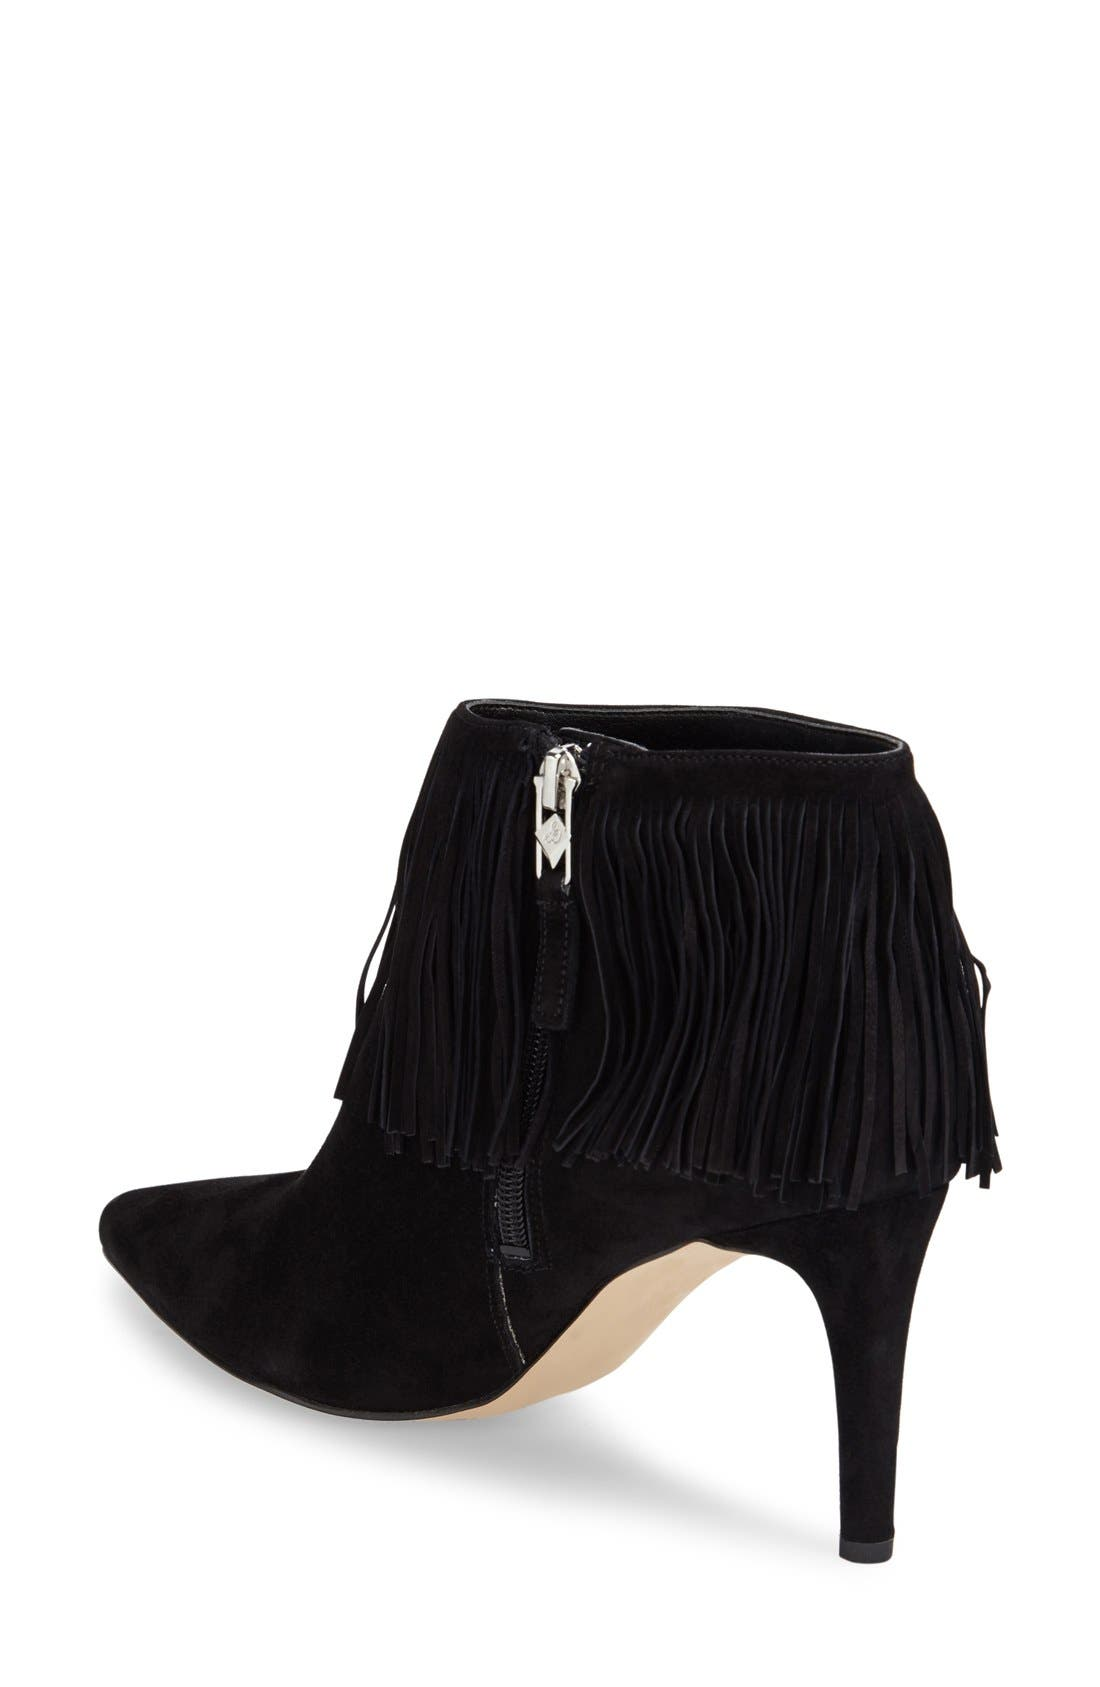 SAM EDELMAN,                             'Kandice' Fringed Suede Pointy Toe Bootie,                             Alternate thumbnail 6, color,                             002